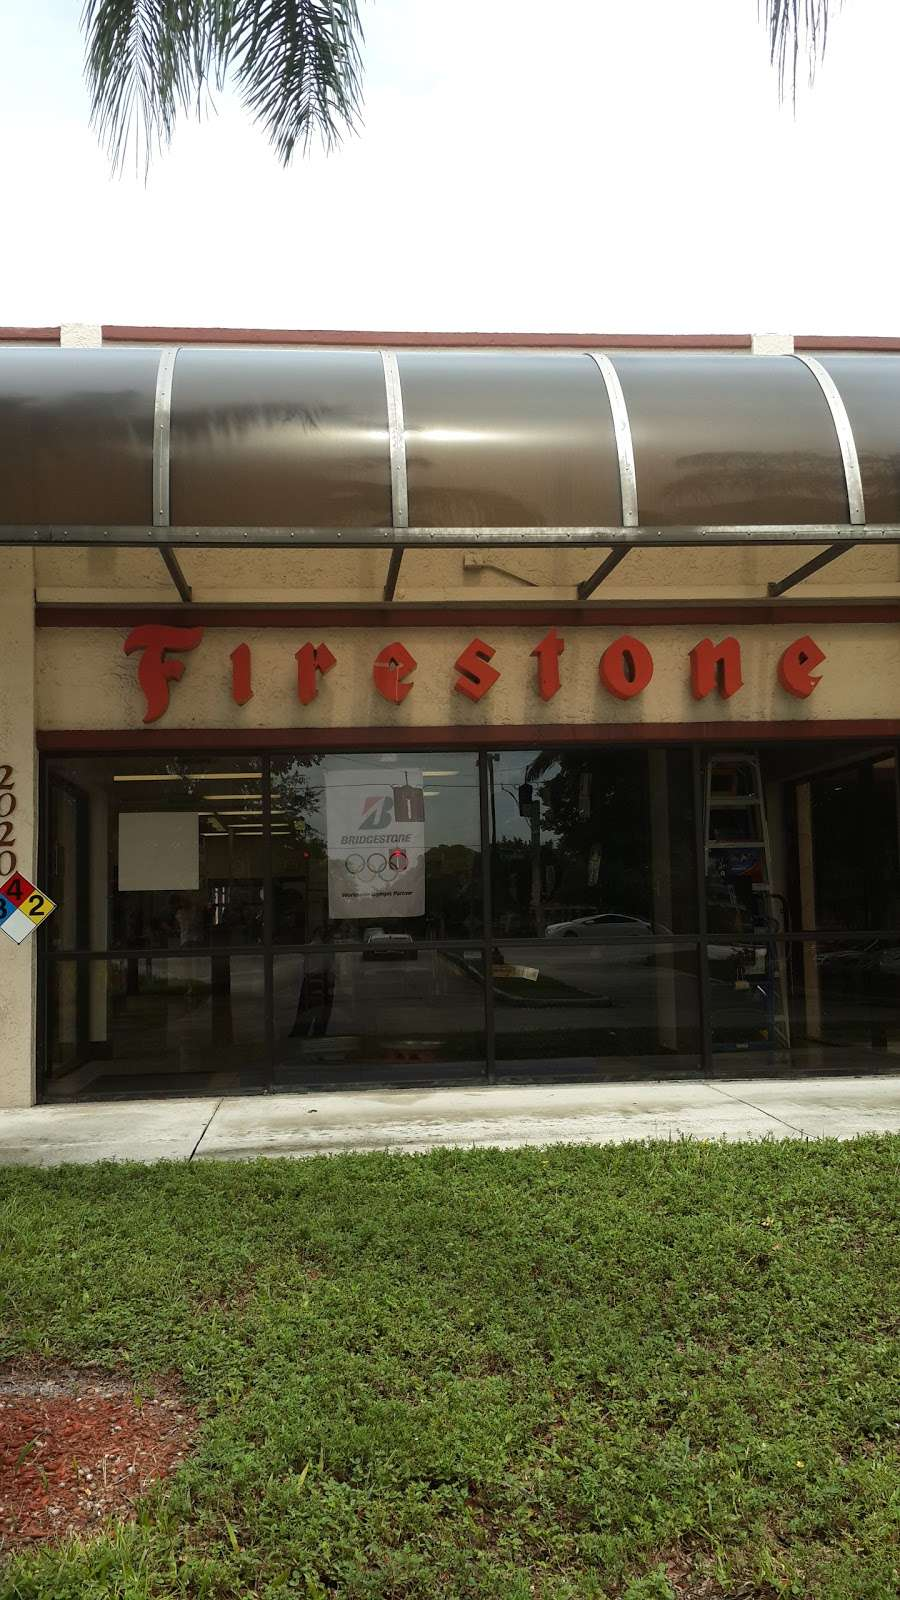 Firestone Complete Auto Care - car repair  | Photo 3 of 8 | Address: 2020 N University Dr, Coral Springs, FL 33071, USA | Phone: (954) 840-8591